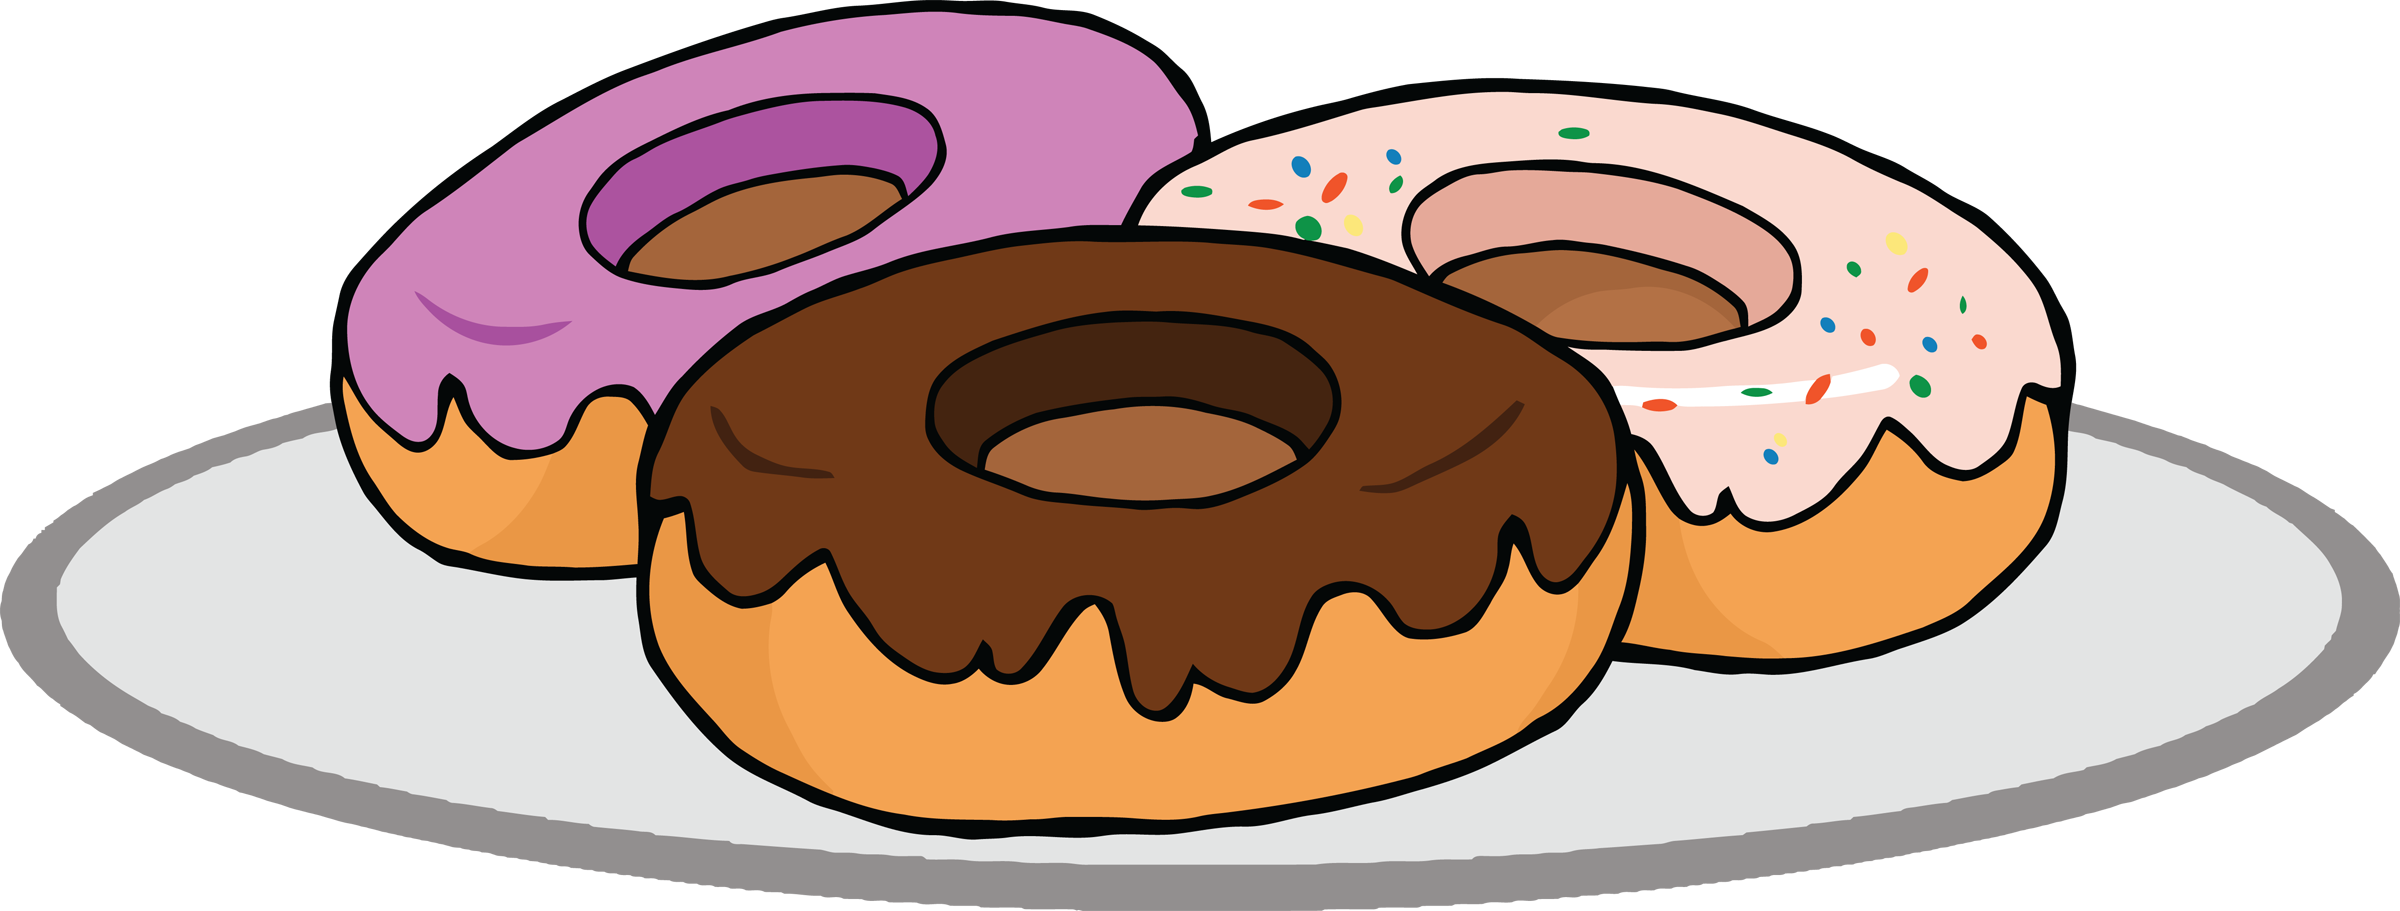 Eat clipart mouth full food. Donut clip art recipes